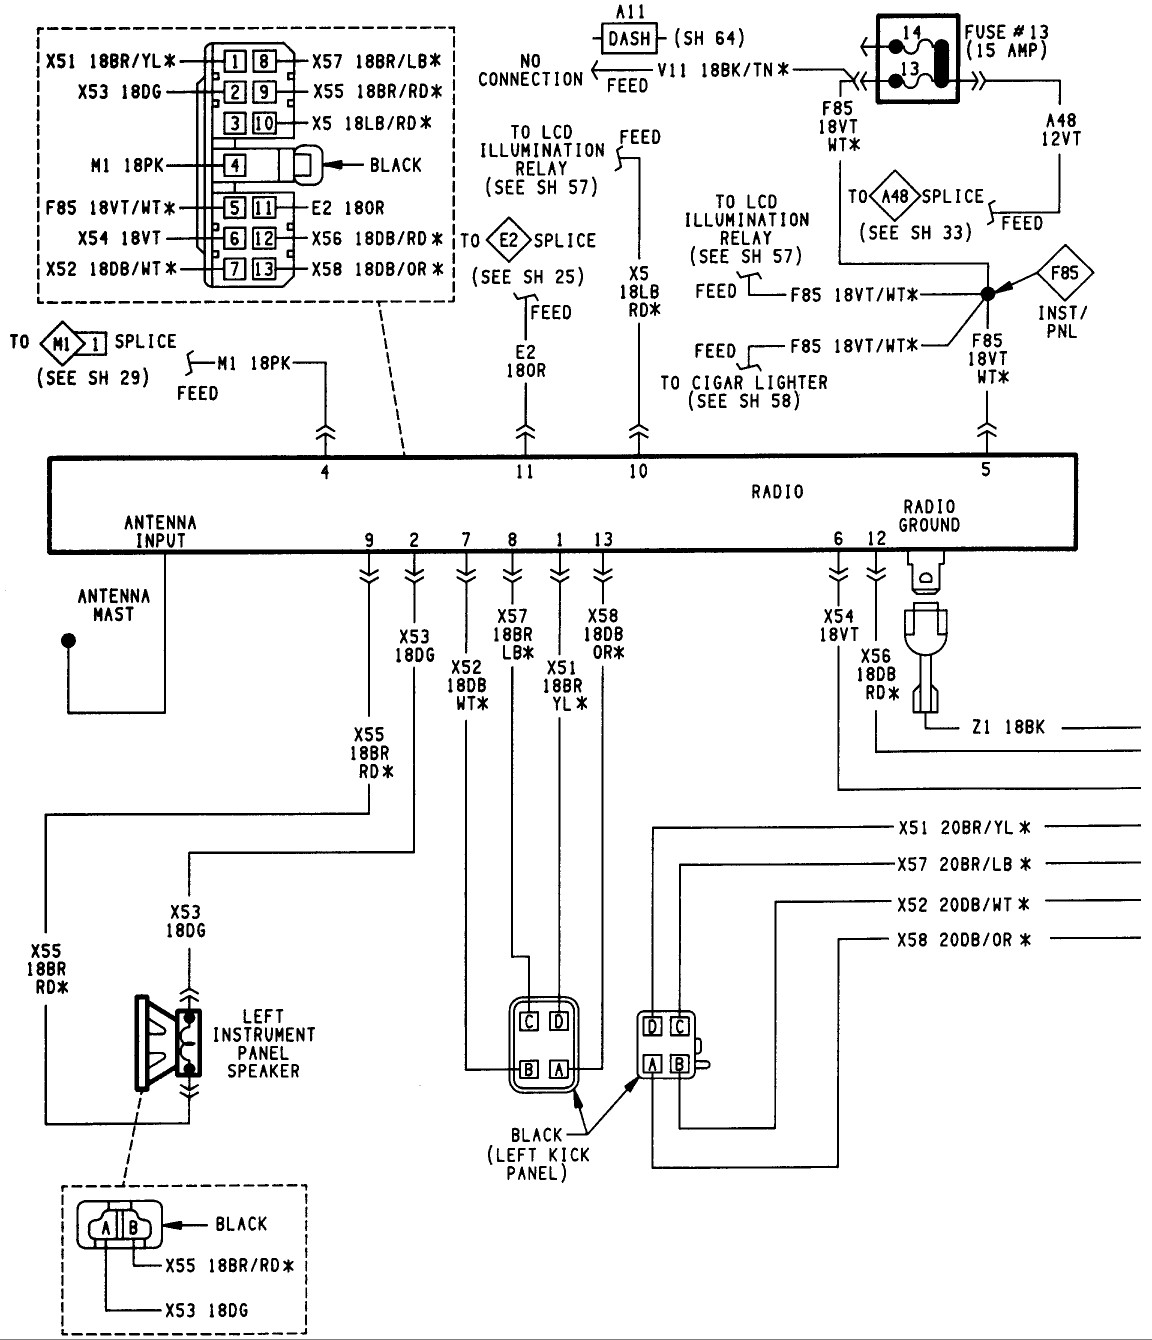 Diagram 2014 Jeeppass Stereo Wiring Diagram Full Version Hd Quality Wiring Diagram Relibis Fanfaradilegnano It